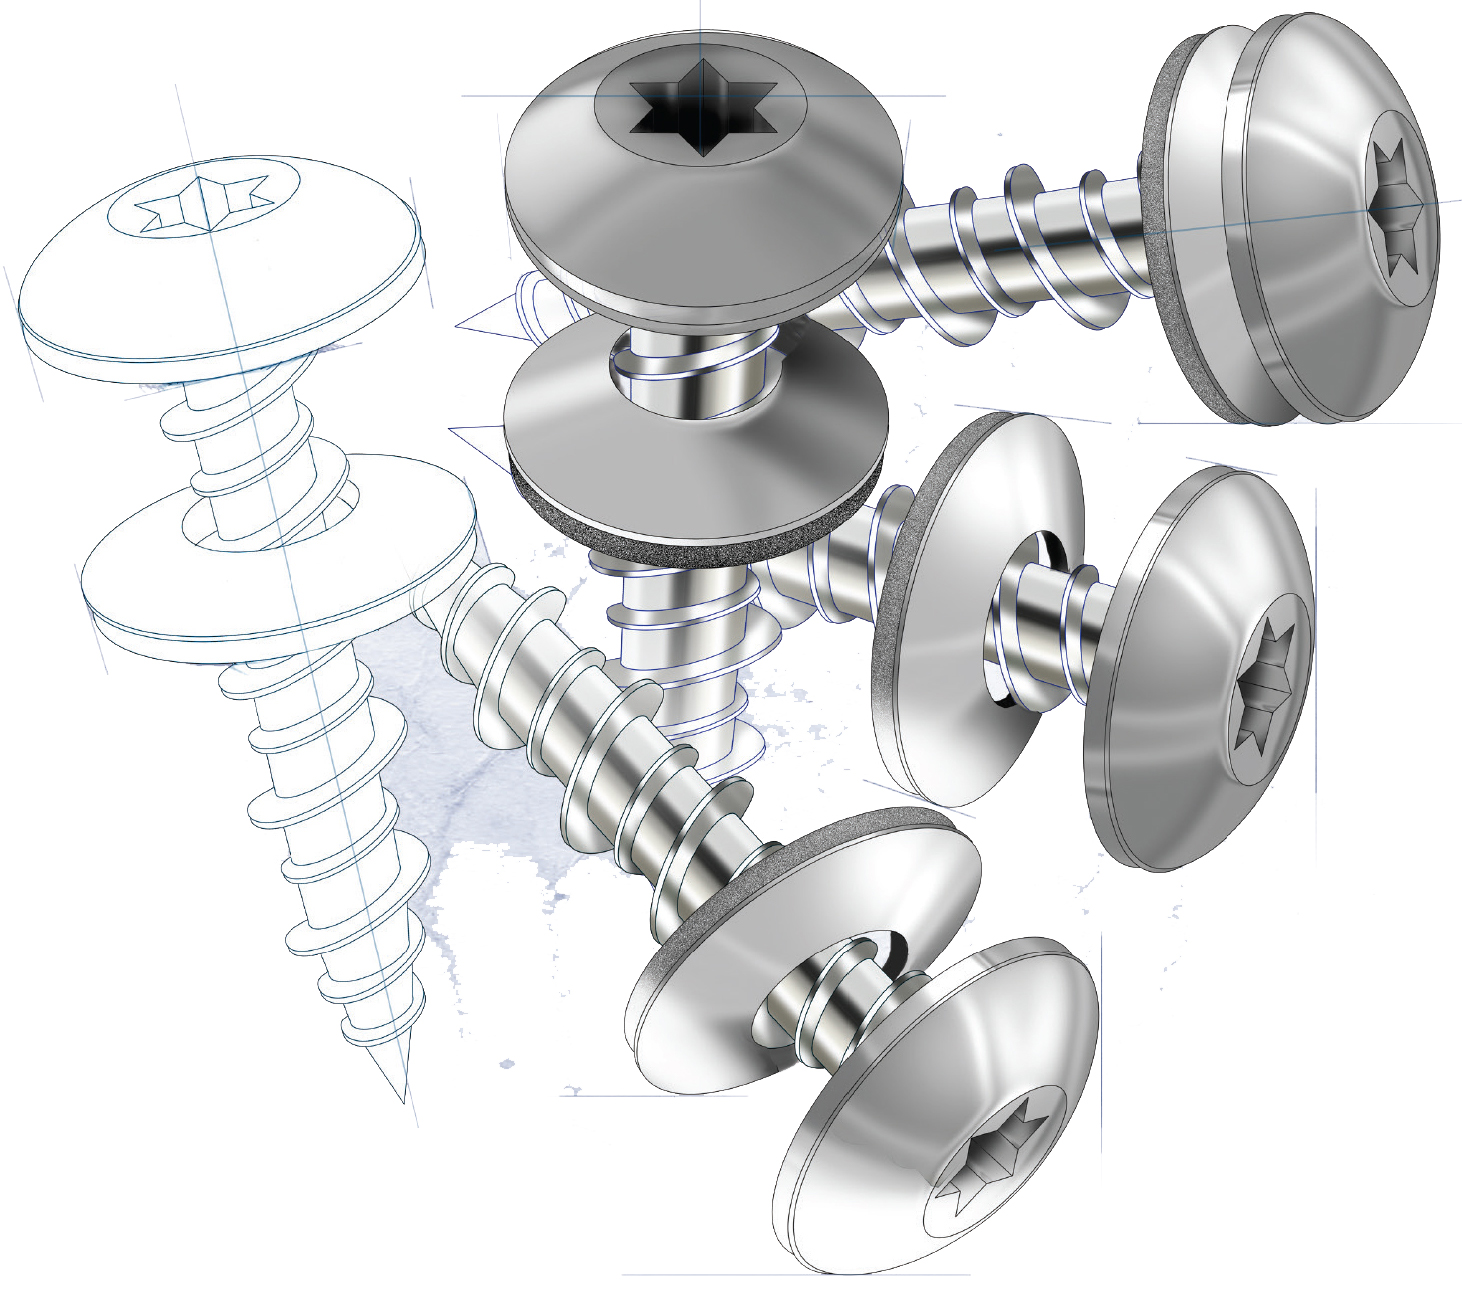 http://wiseconstruction.net/sites/wiseconstruction.net/assets/images/default/difference-fasteners.jpg